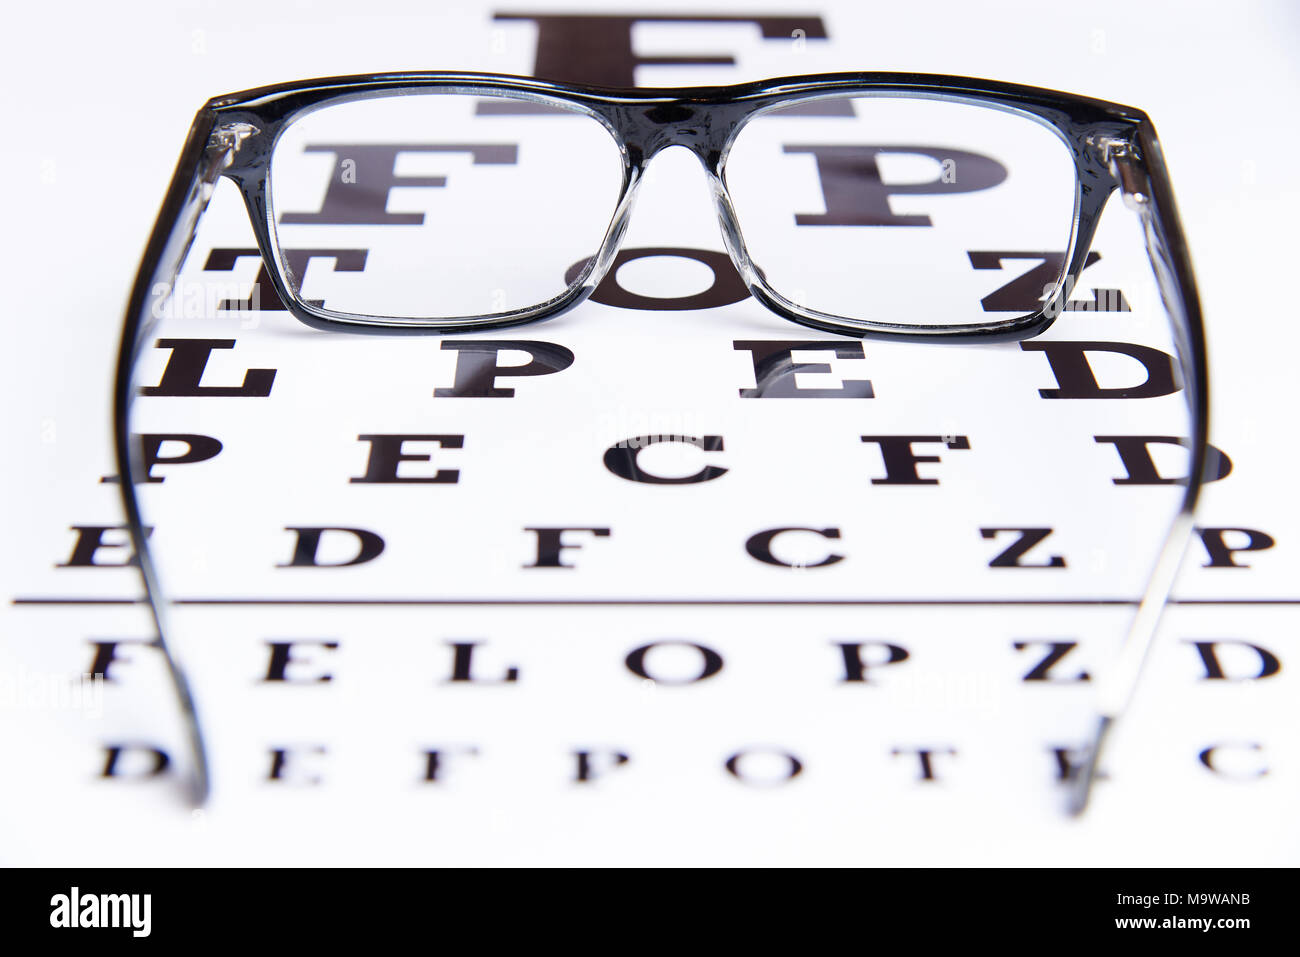 Eye exam chart blurred stock photos eye exam chart blurred stock glasses lie on the table for eye examination stock image geenschuldenfo Gallery